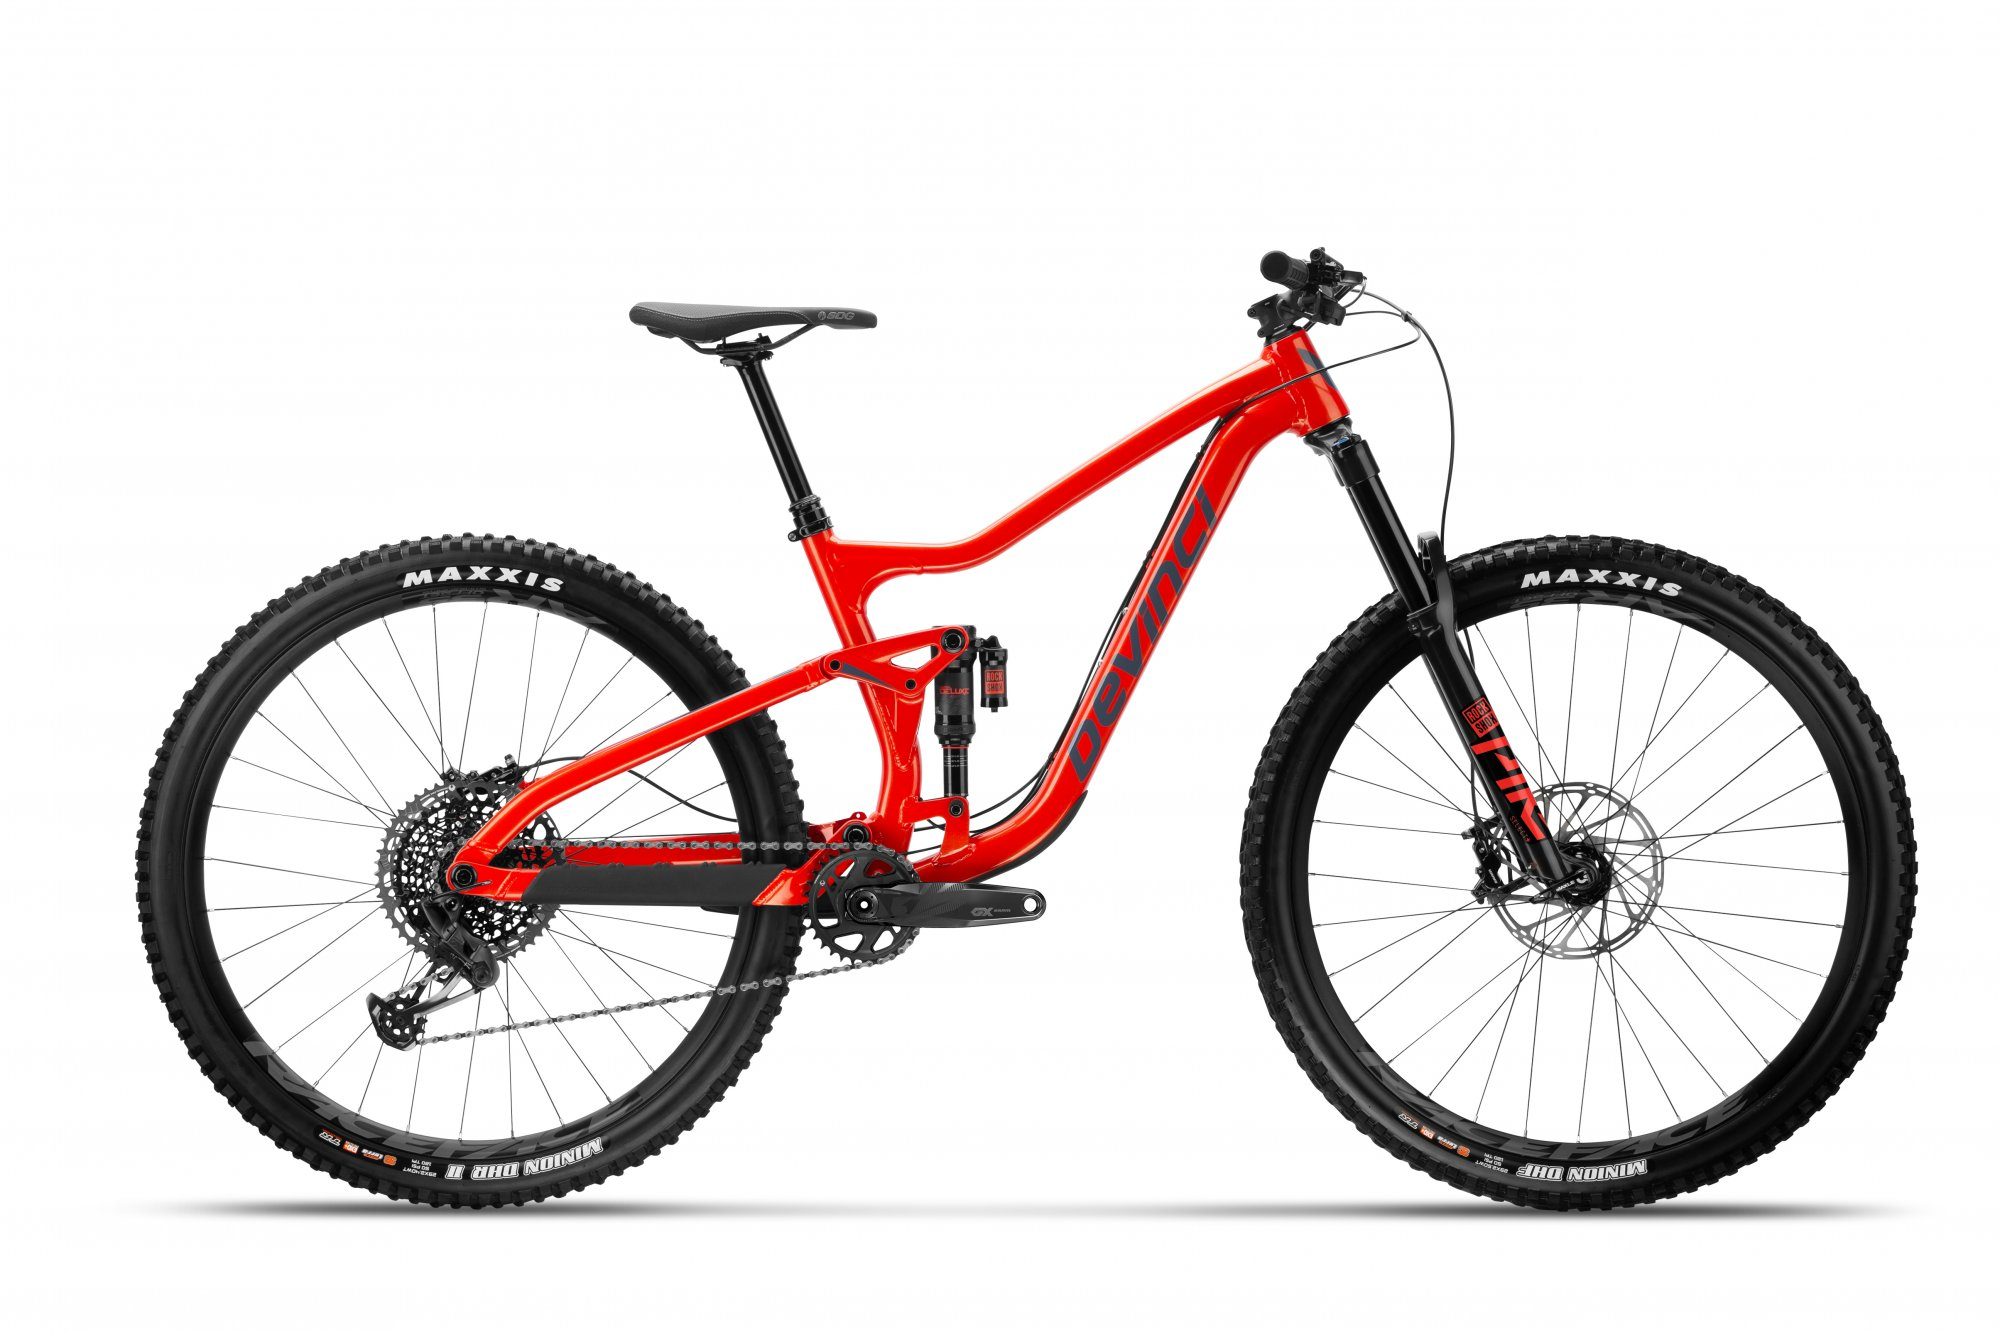 TROY 29R ALLOY GX LGE RED